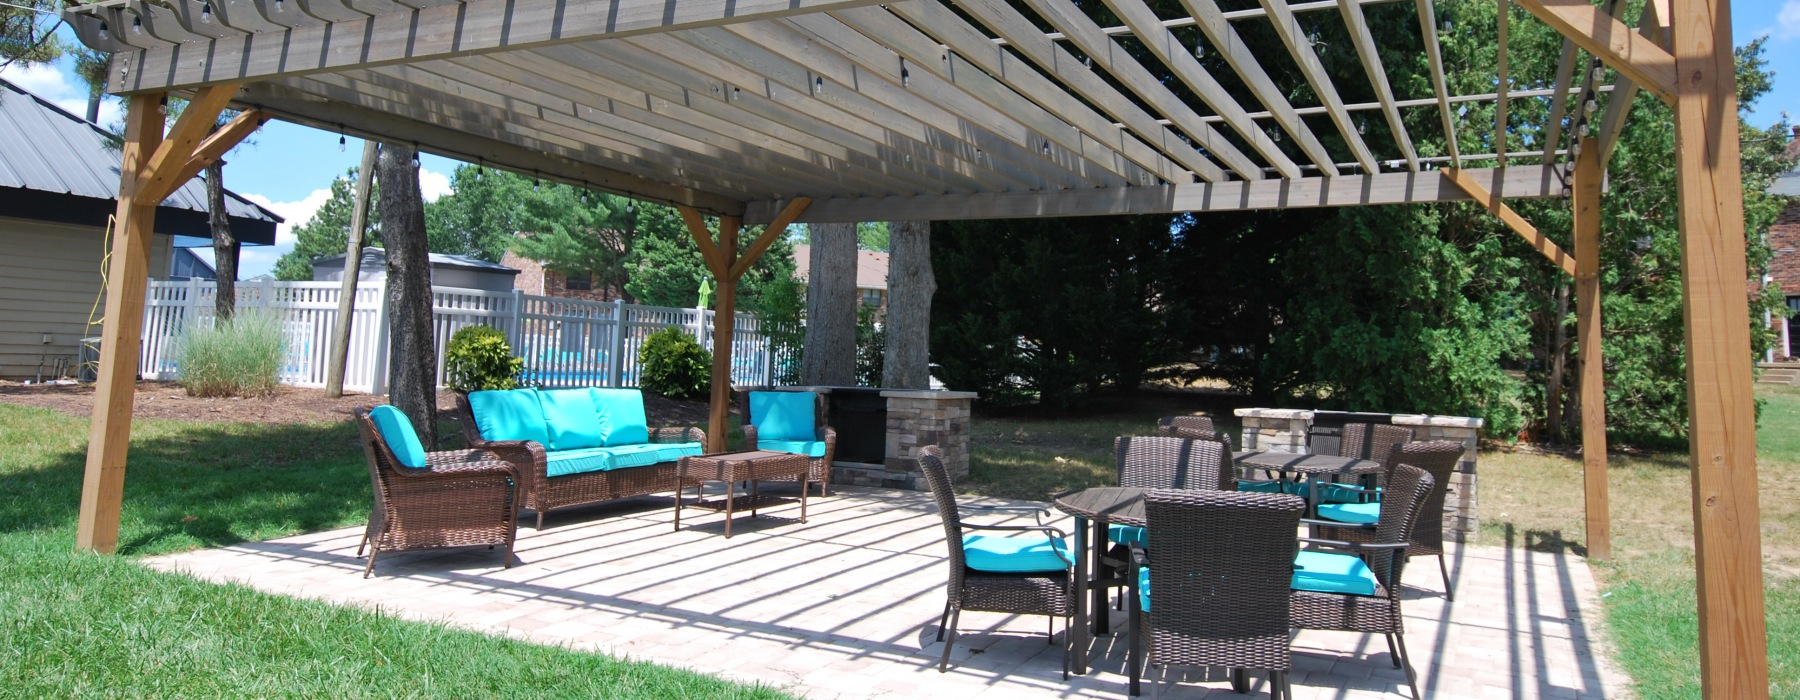 Grill area with lounge furniture covered by pergola